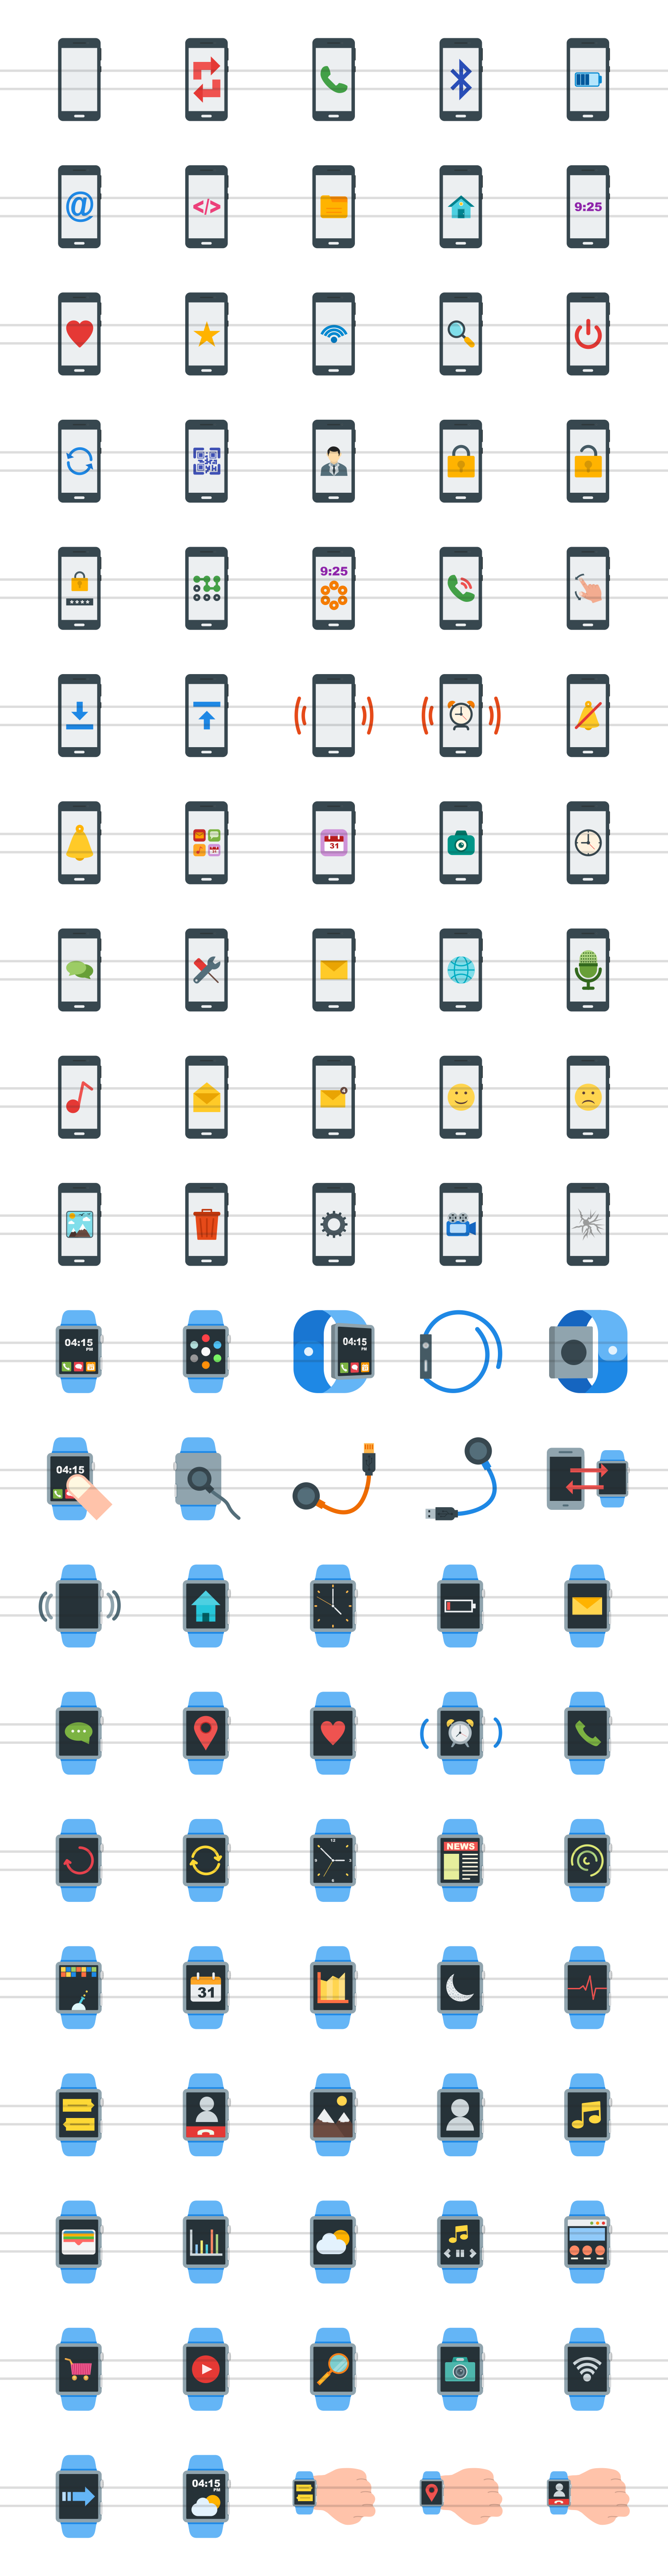 100 Smartphone & Smartwatch Flat Icons example image 2